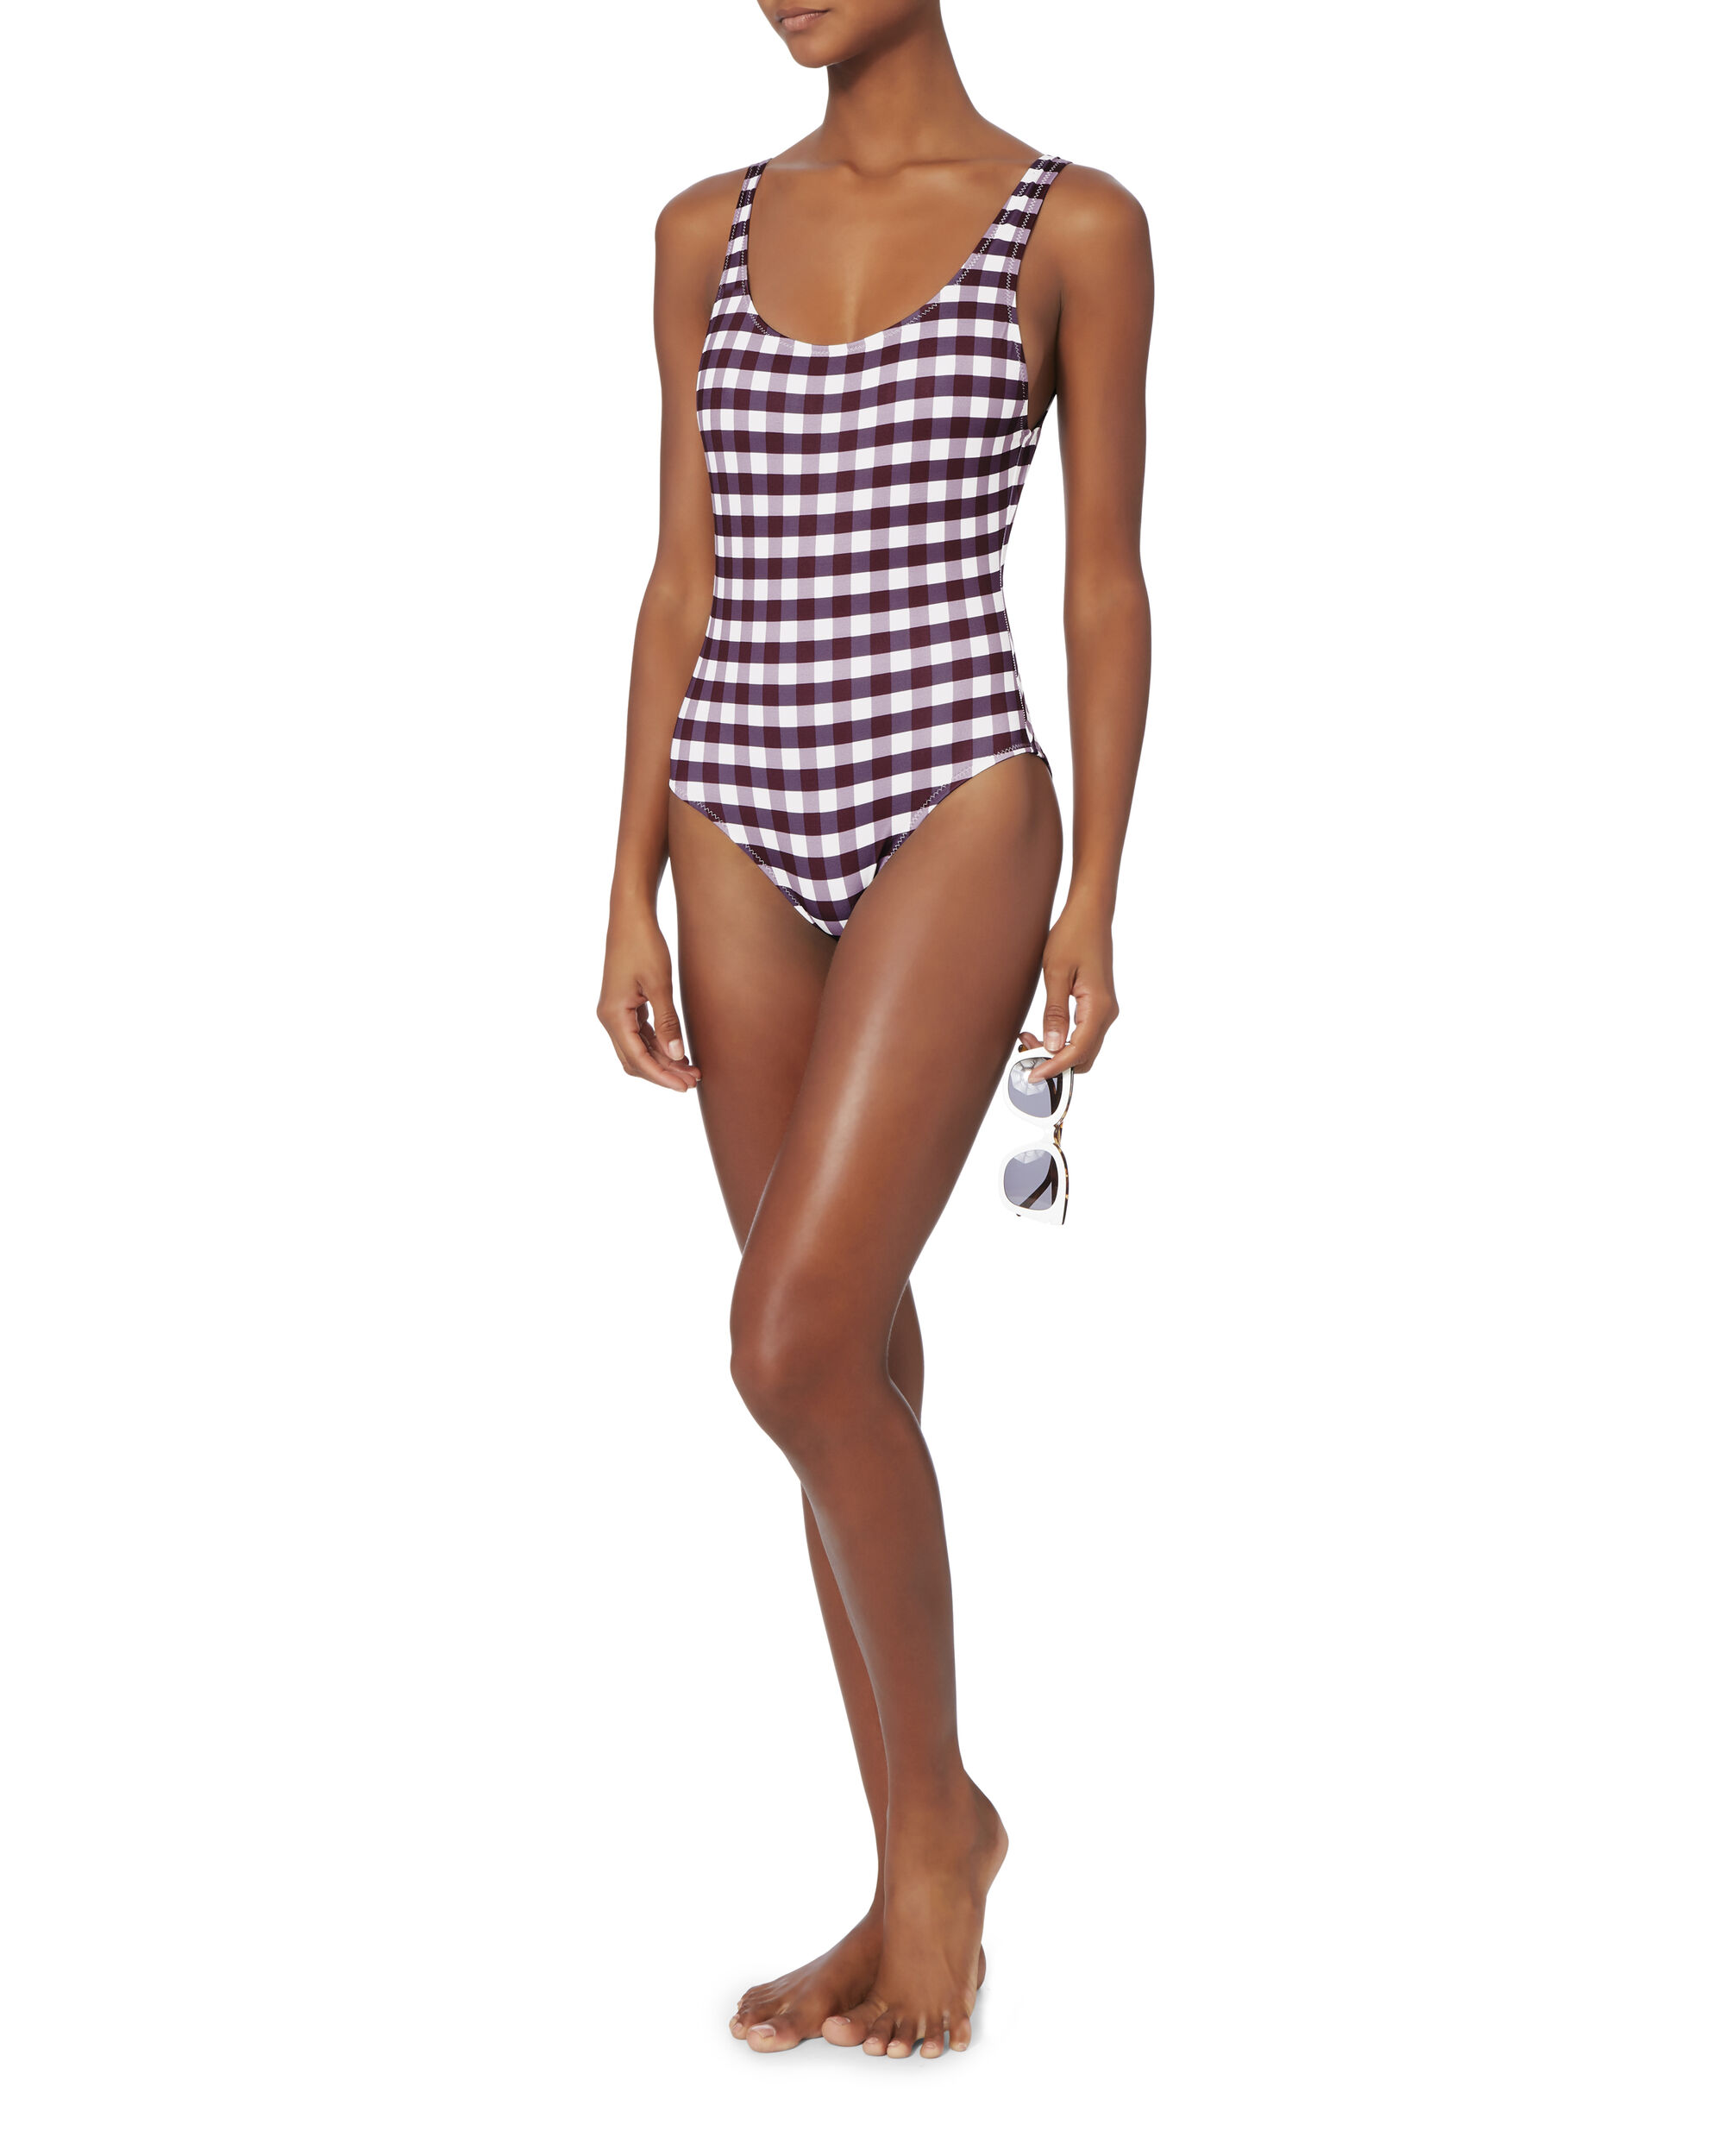 Anne-Marie Gingham Swimsuit, PATTERN, hi-res